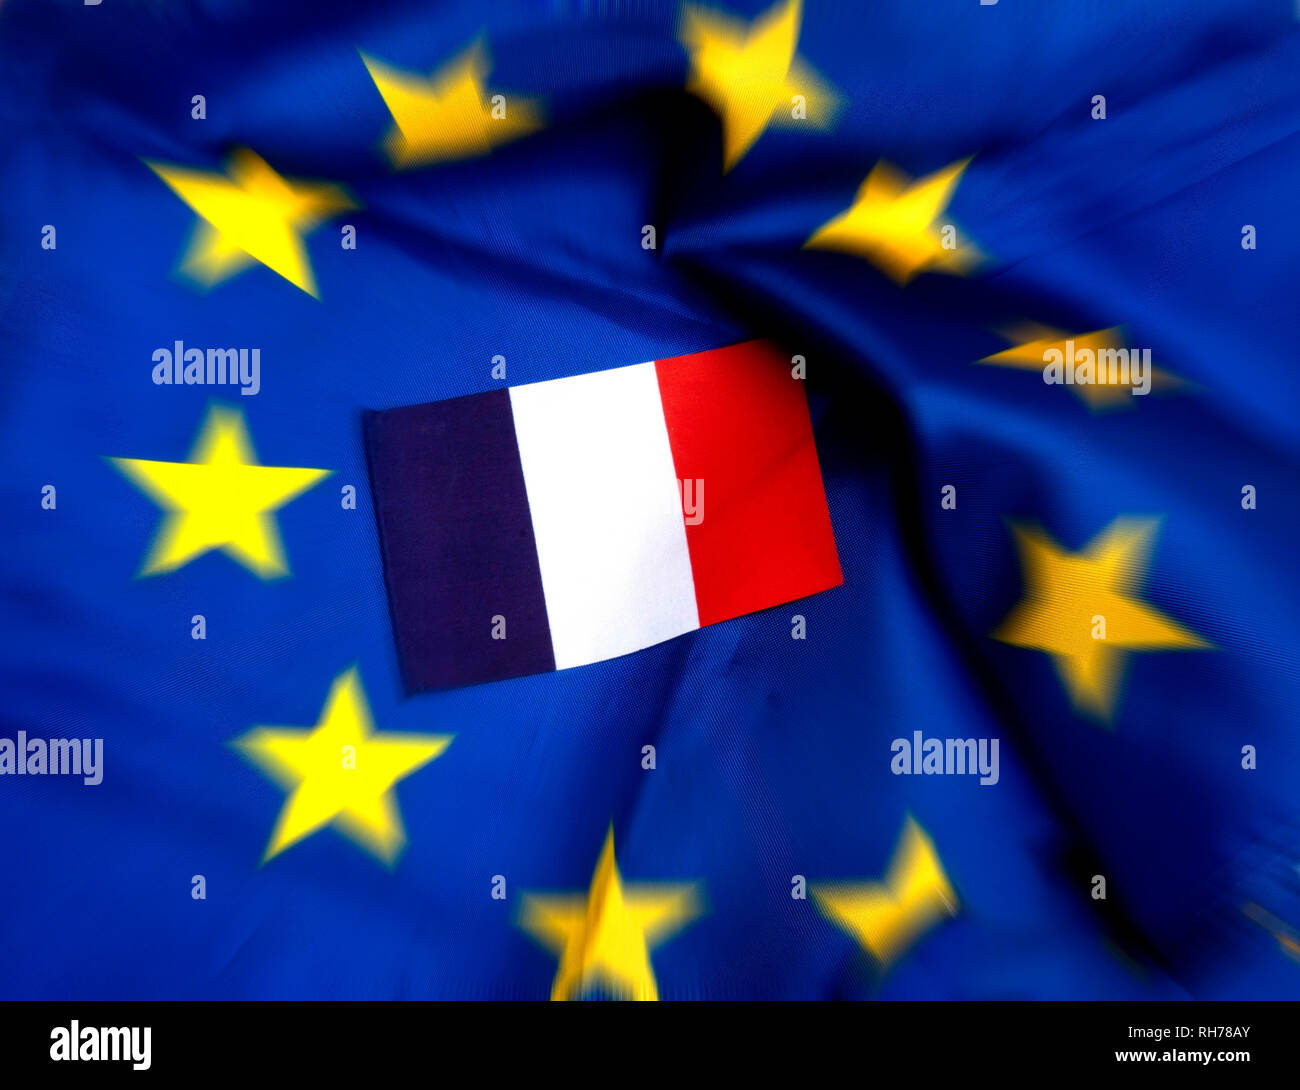 Flags of European Union and France - Stock Image